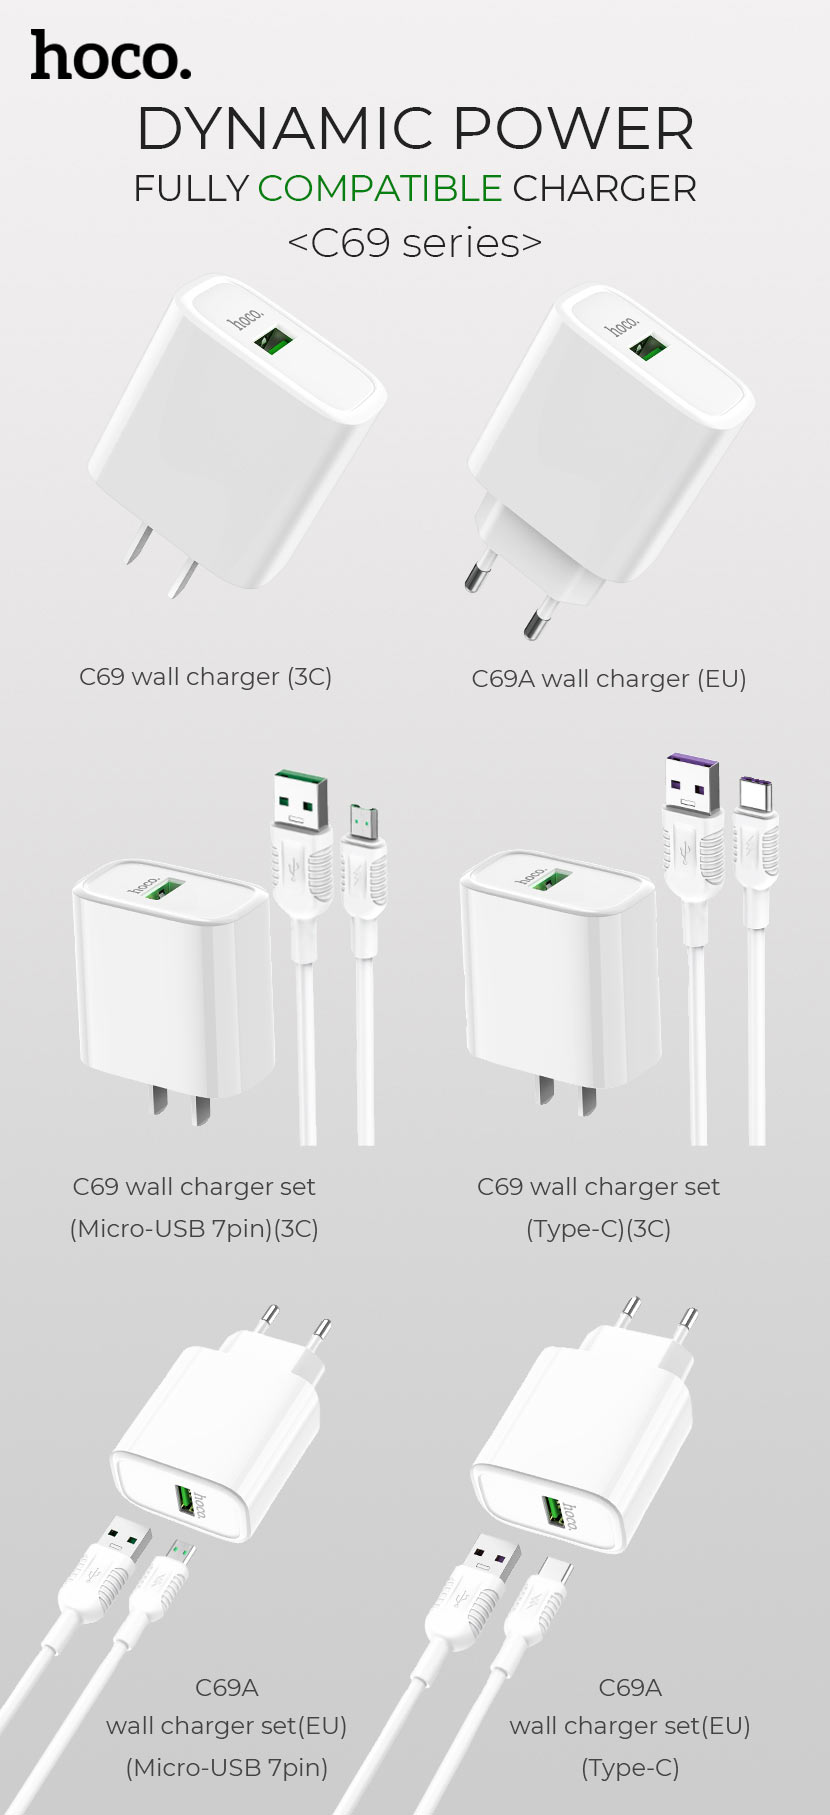 hoco news c69 dynamic power fully compatible charger set en